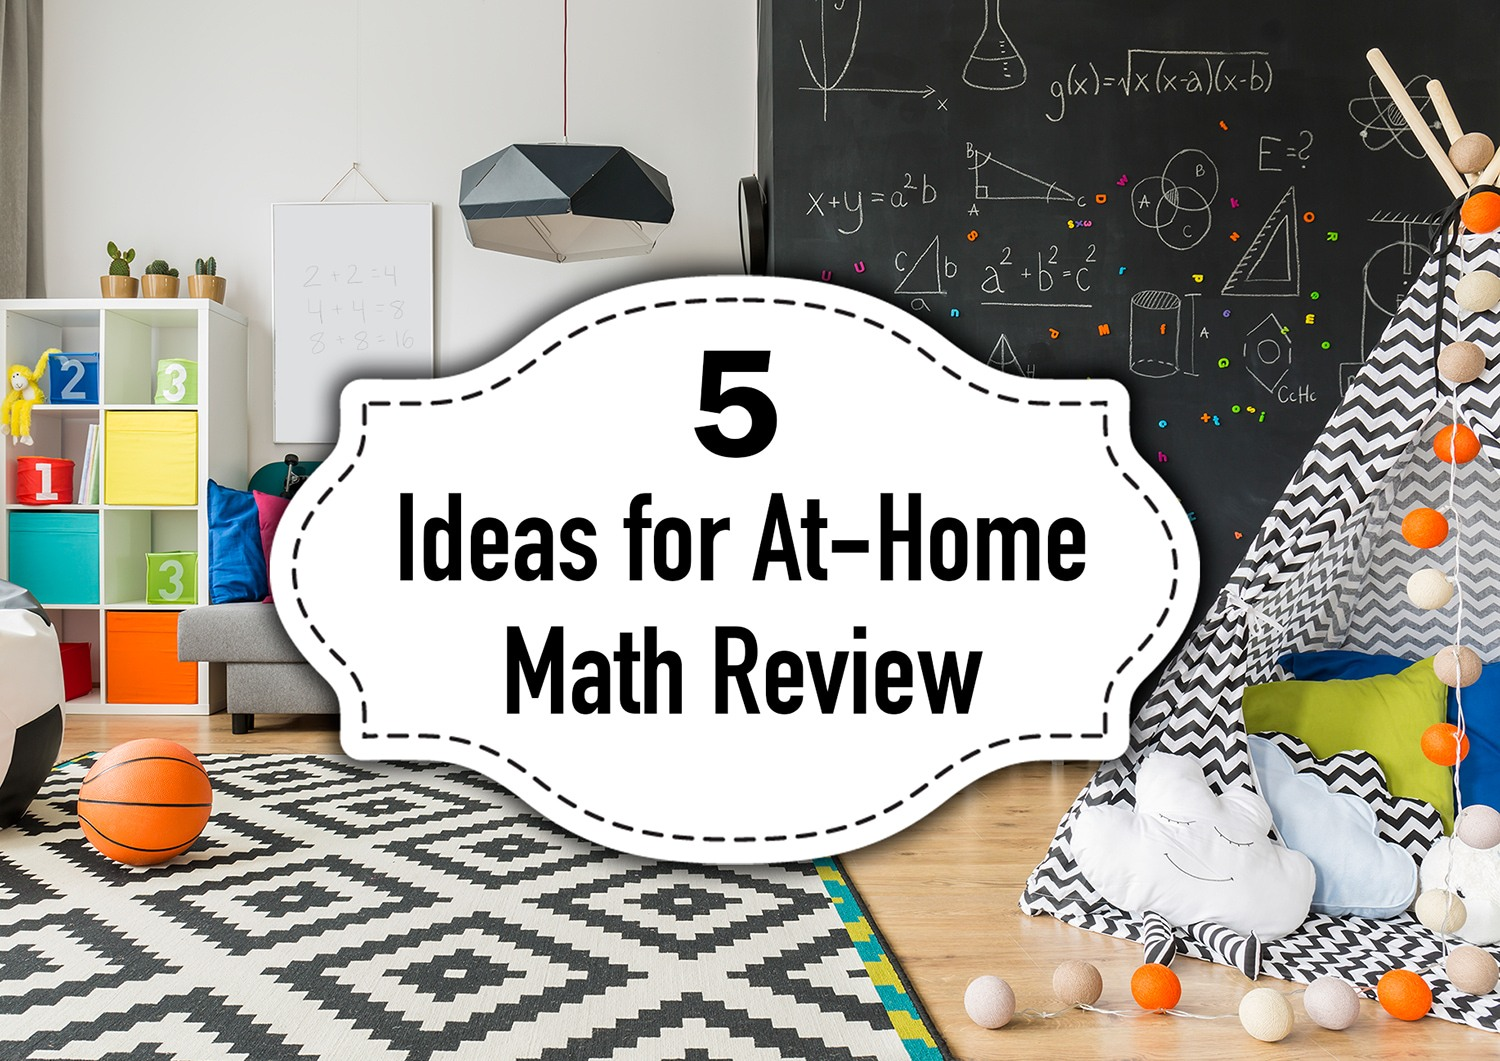 Five Tips for At-Home Math Review